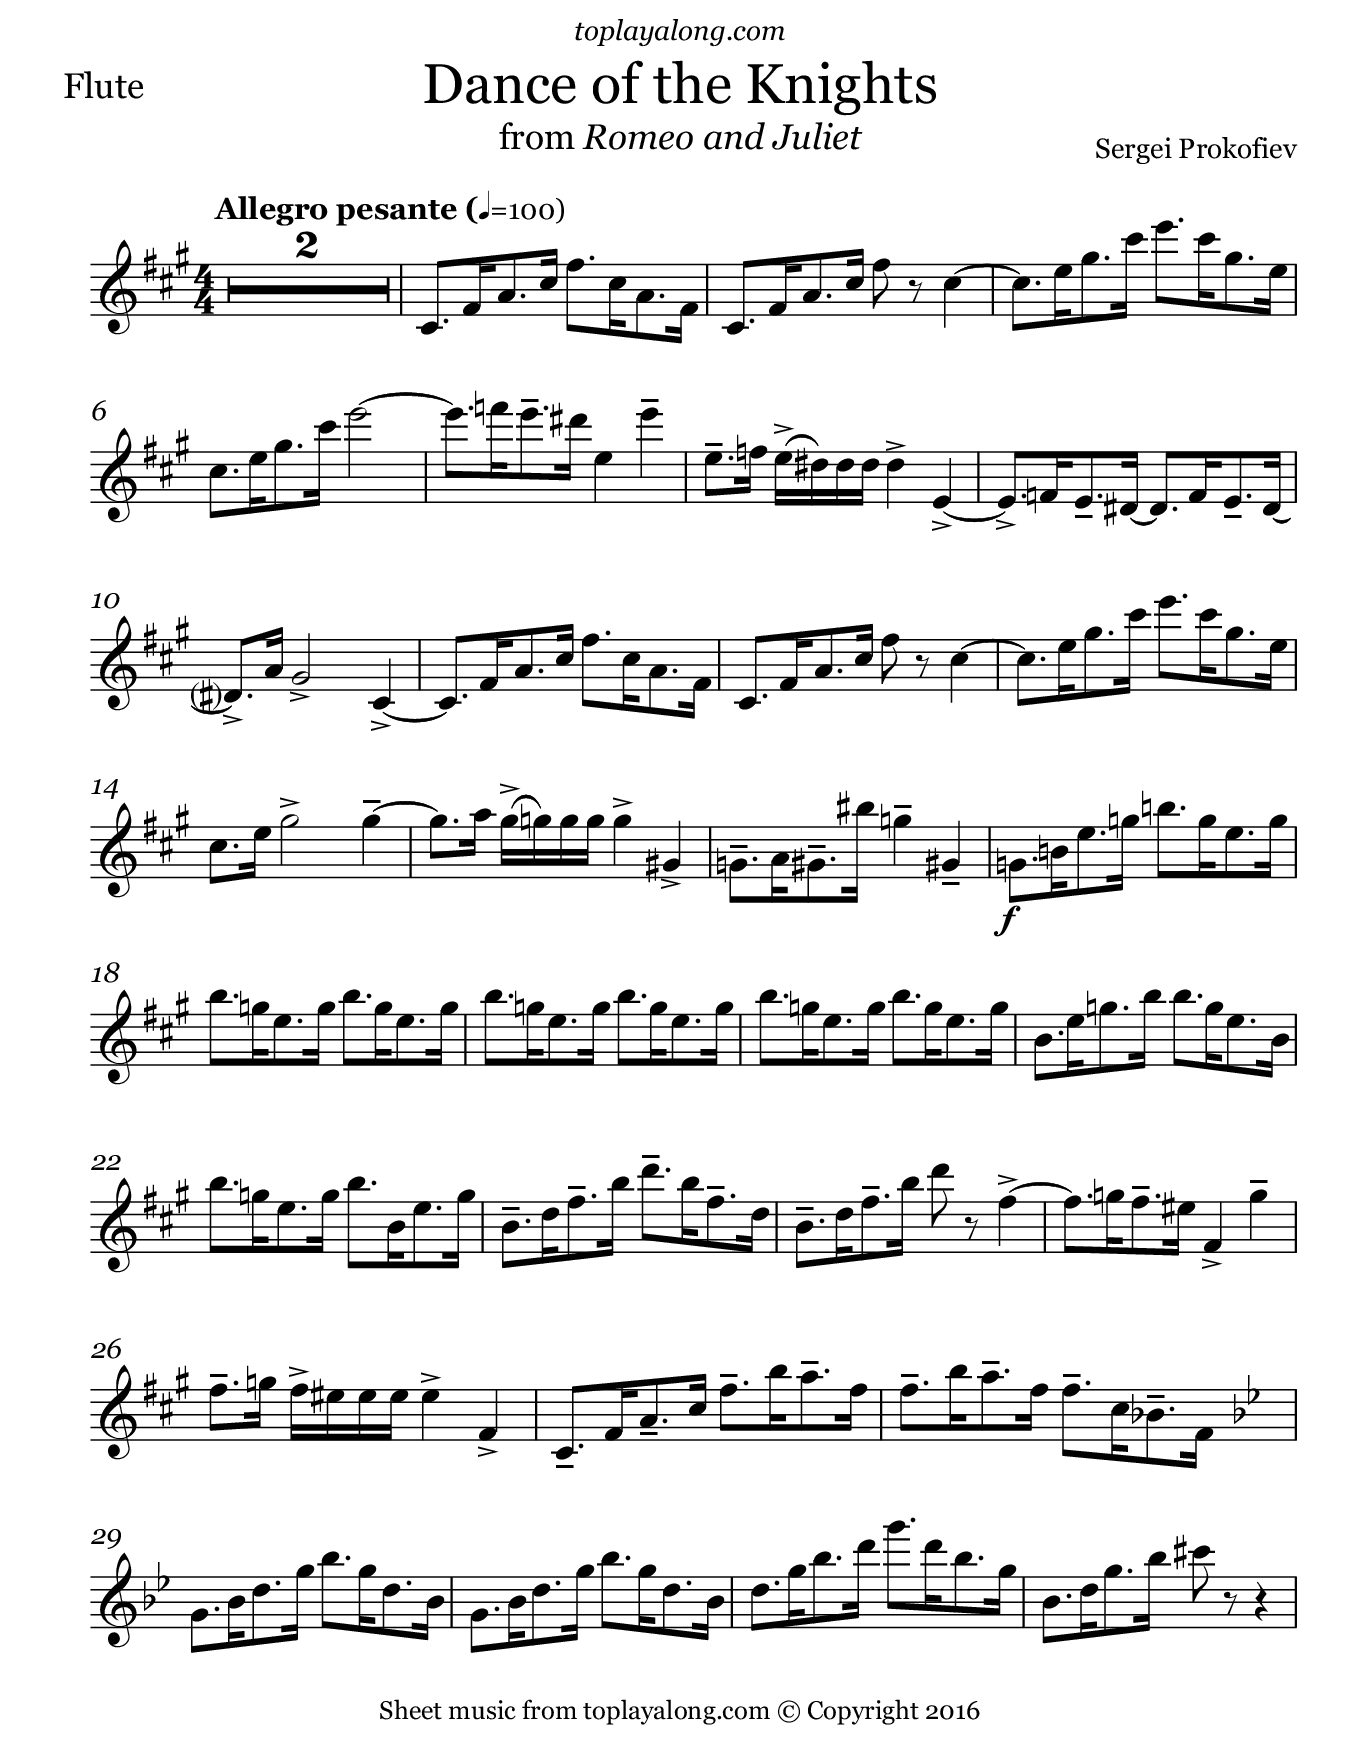 Dance of the Knights by Prokofiev. Sheet music for Flute, page 1.